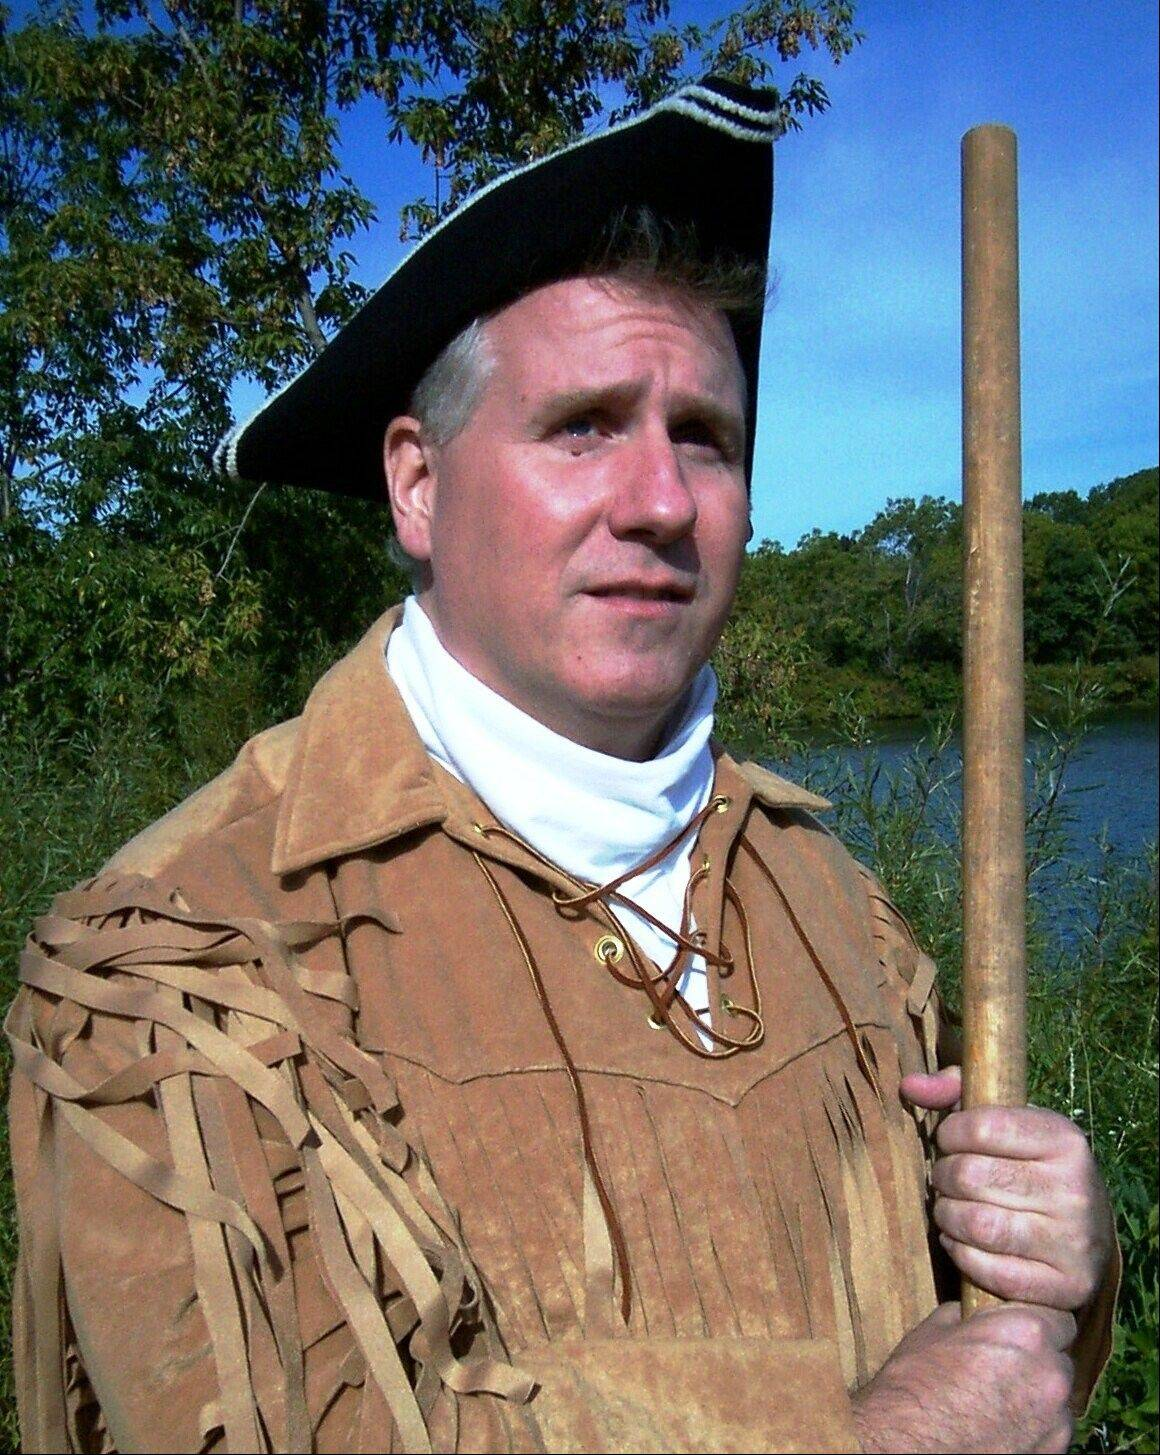 Historical impersonator Terry Lynch will appear as Meriwether Lewis at 3 p.m. Sunday at the Maple Street Chapel in Lombard to share stories about the Lewis and Clark expedition during the first of three variety series events sponsored by the Maple Street Chapel Preservation Society.